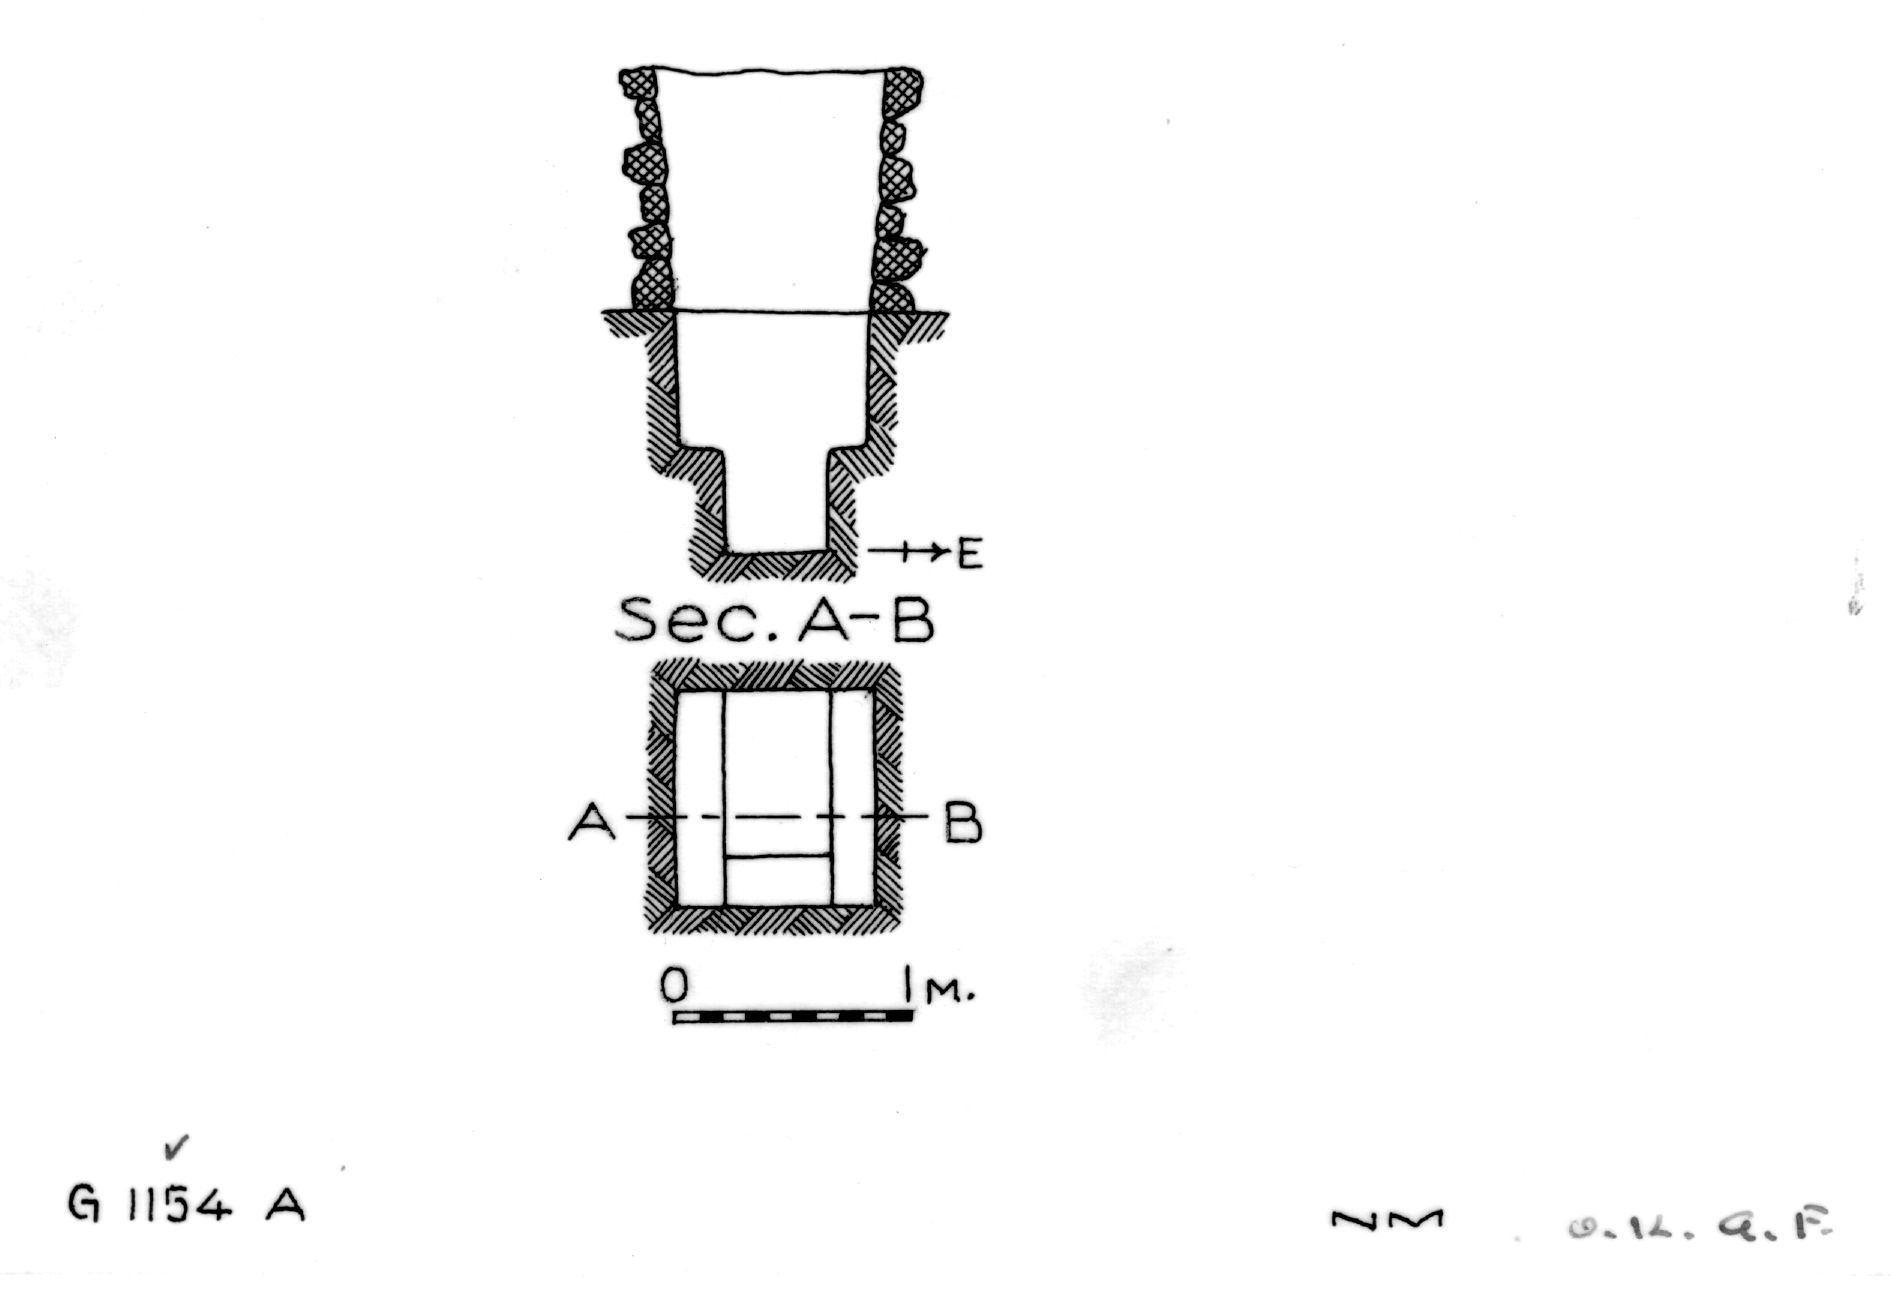 Maps and plans: G 1154, Shaft A